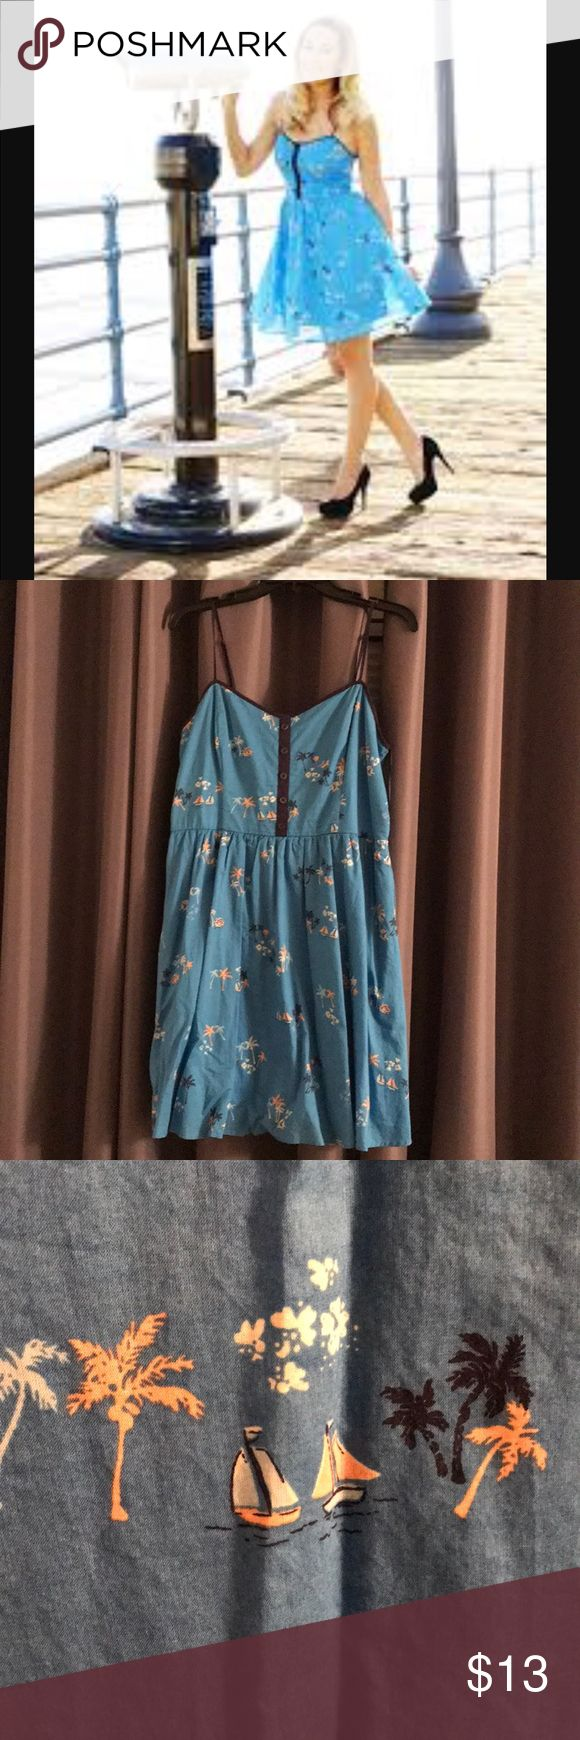 Cute summer dress Once worn once and have had in the closet for some months now. Very cute but unfortunately doesn't fit anymore. Nothing wrong with it. LC Lauren Conrad Dresses Midi #NothingButDresses